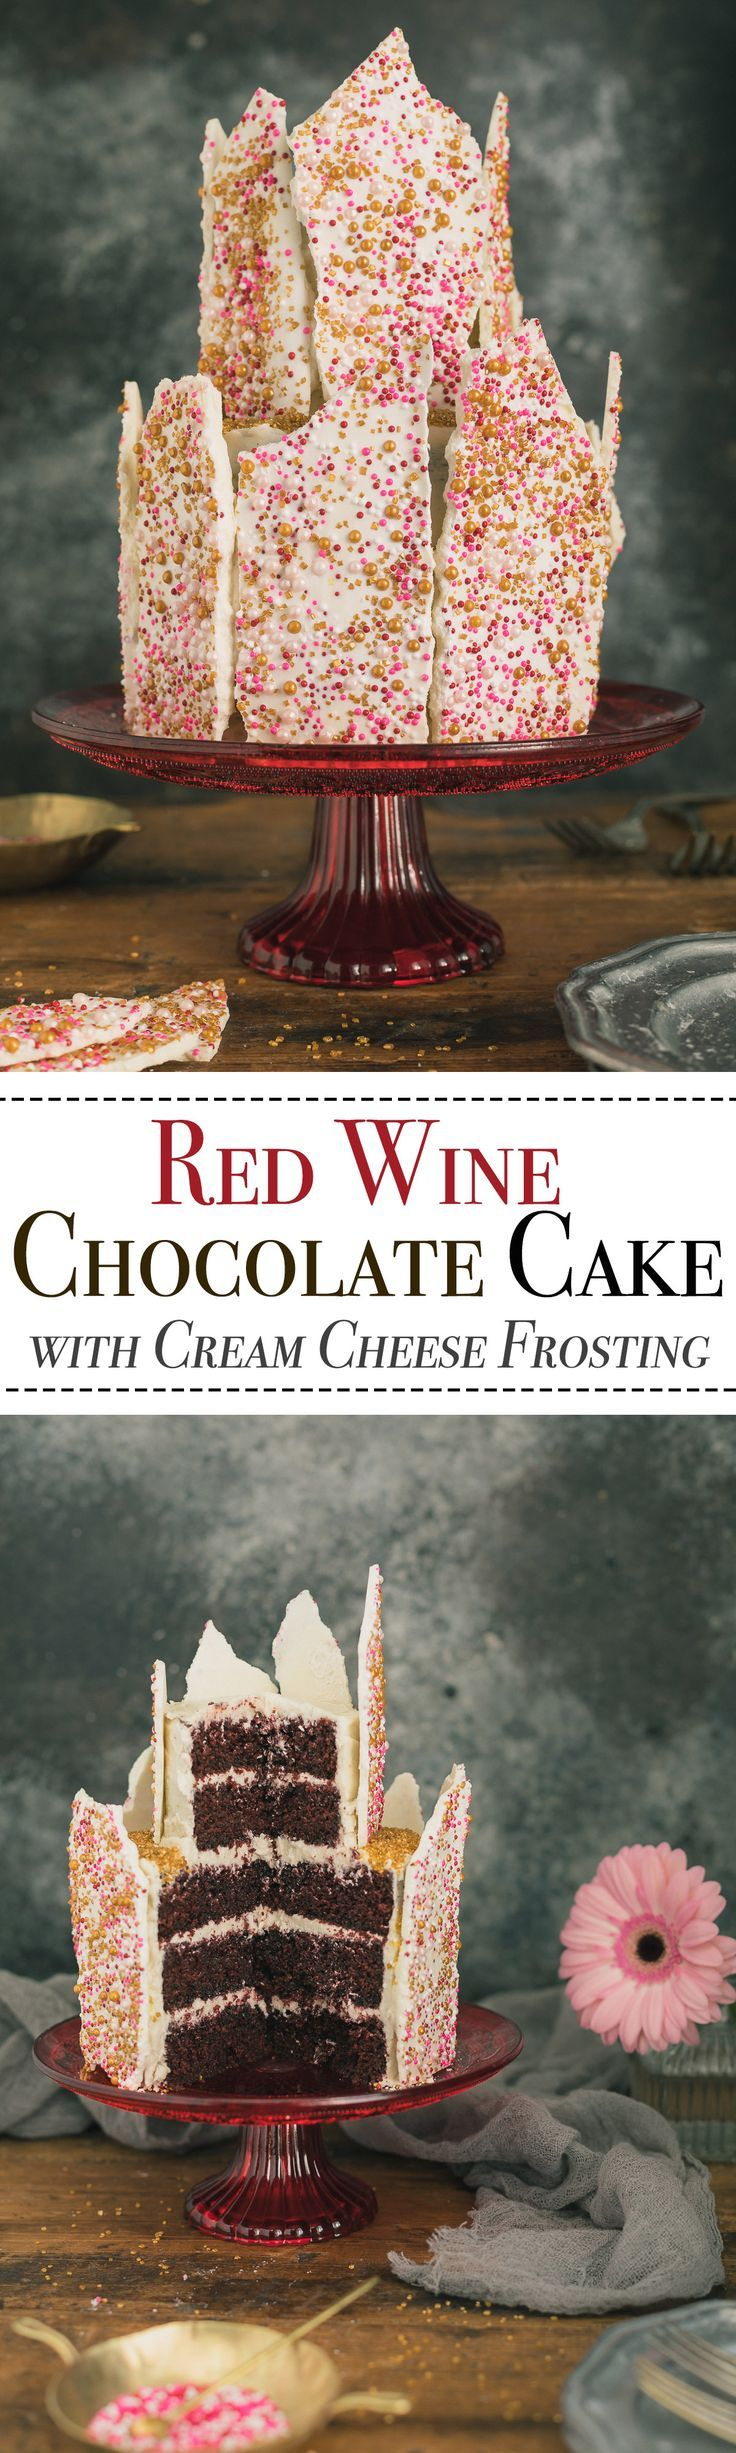 Red Wine Chocolate Cake with Cream Cheese Frosting - An irresistibly moist chocolate cake is spiced with the dark fruit notes of Malbec wine & coated with a lightly sweetened cream cheese frosting, then covered with a sprinkle embellished white chocolate